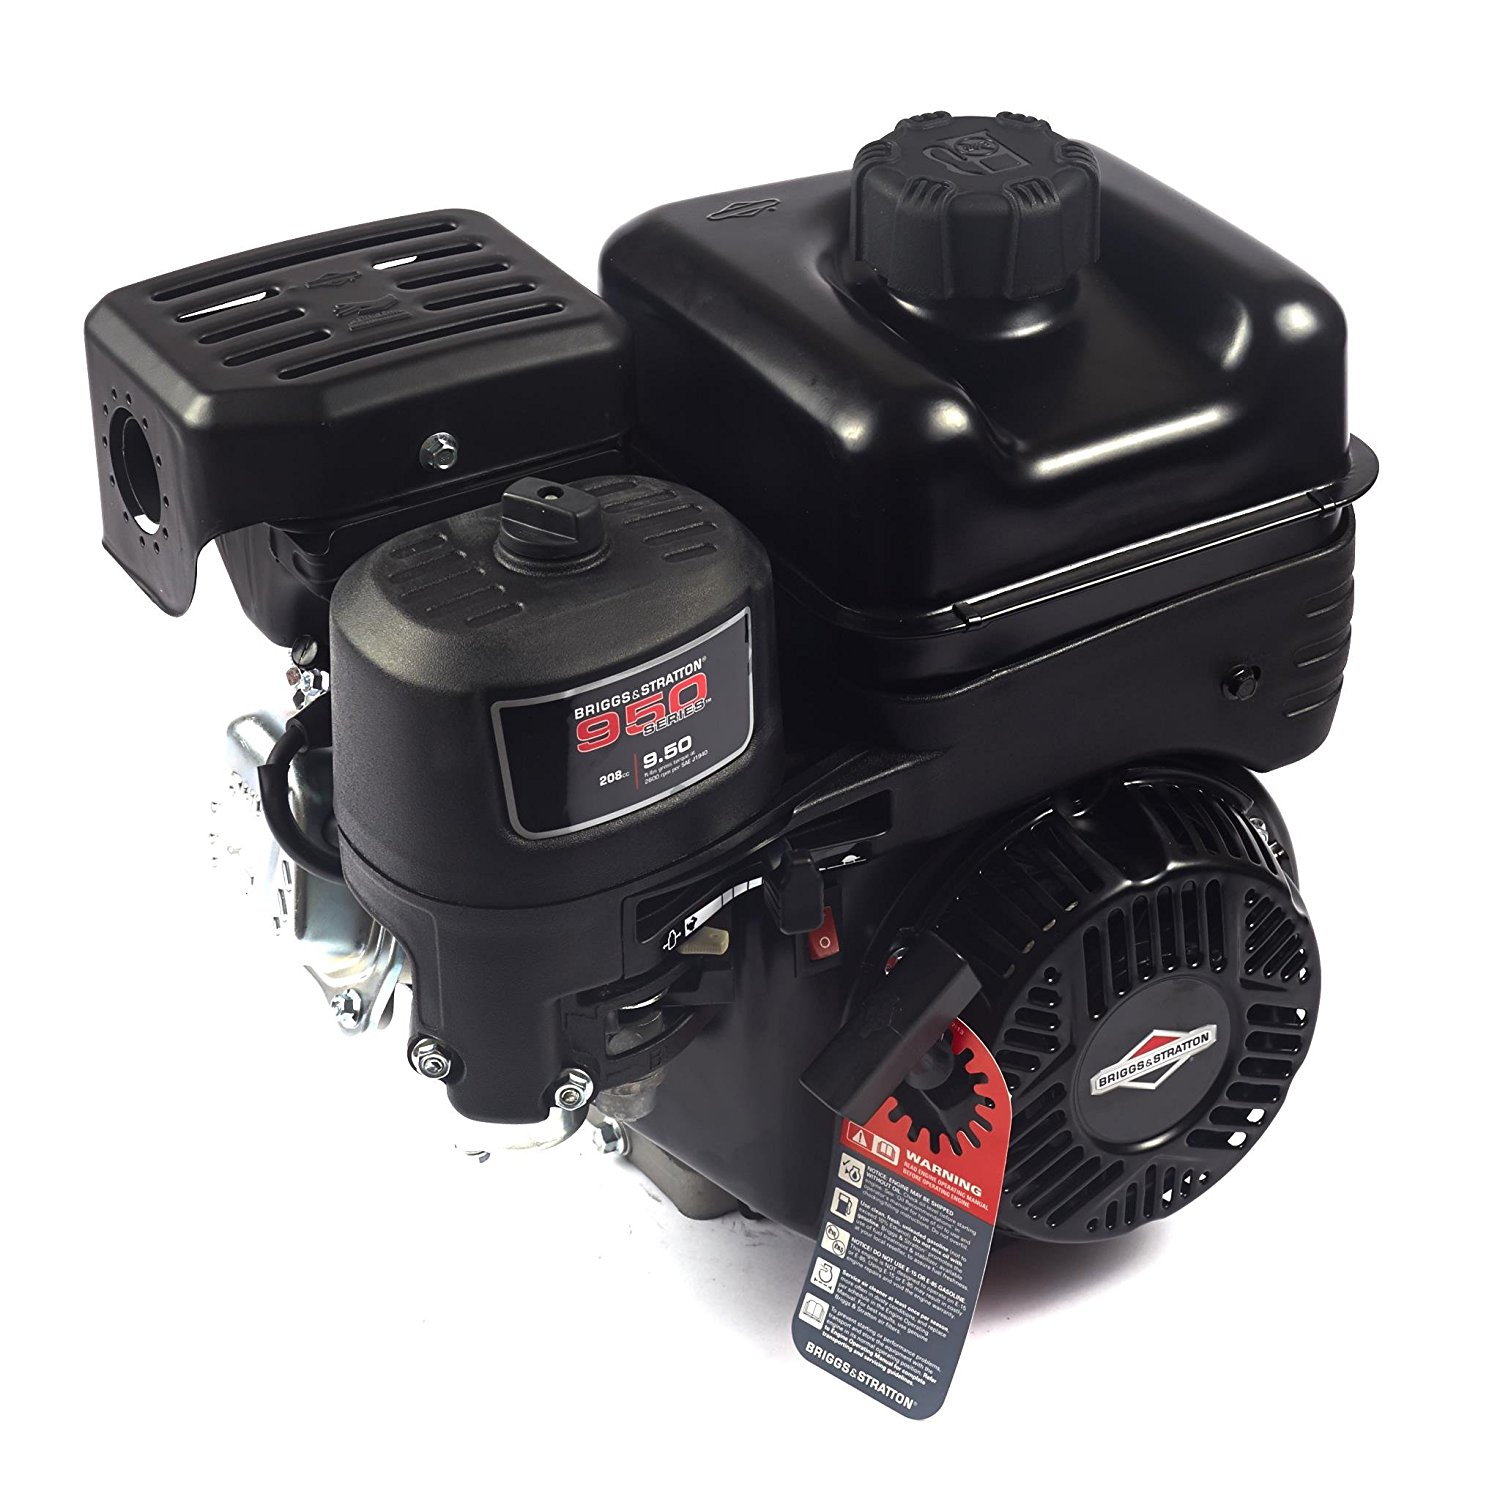 Briggs And Stratton Engine >> Briggs Stratton 950 Series Ohv Engine Bsxr950 Bmi Karts And Parts